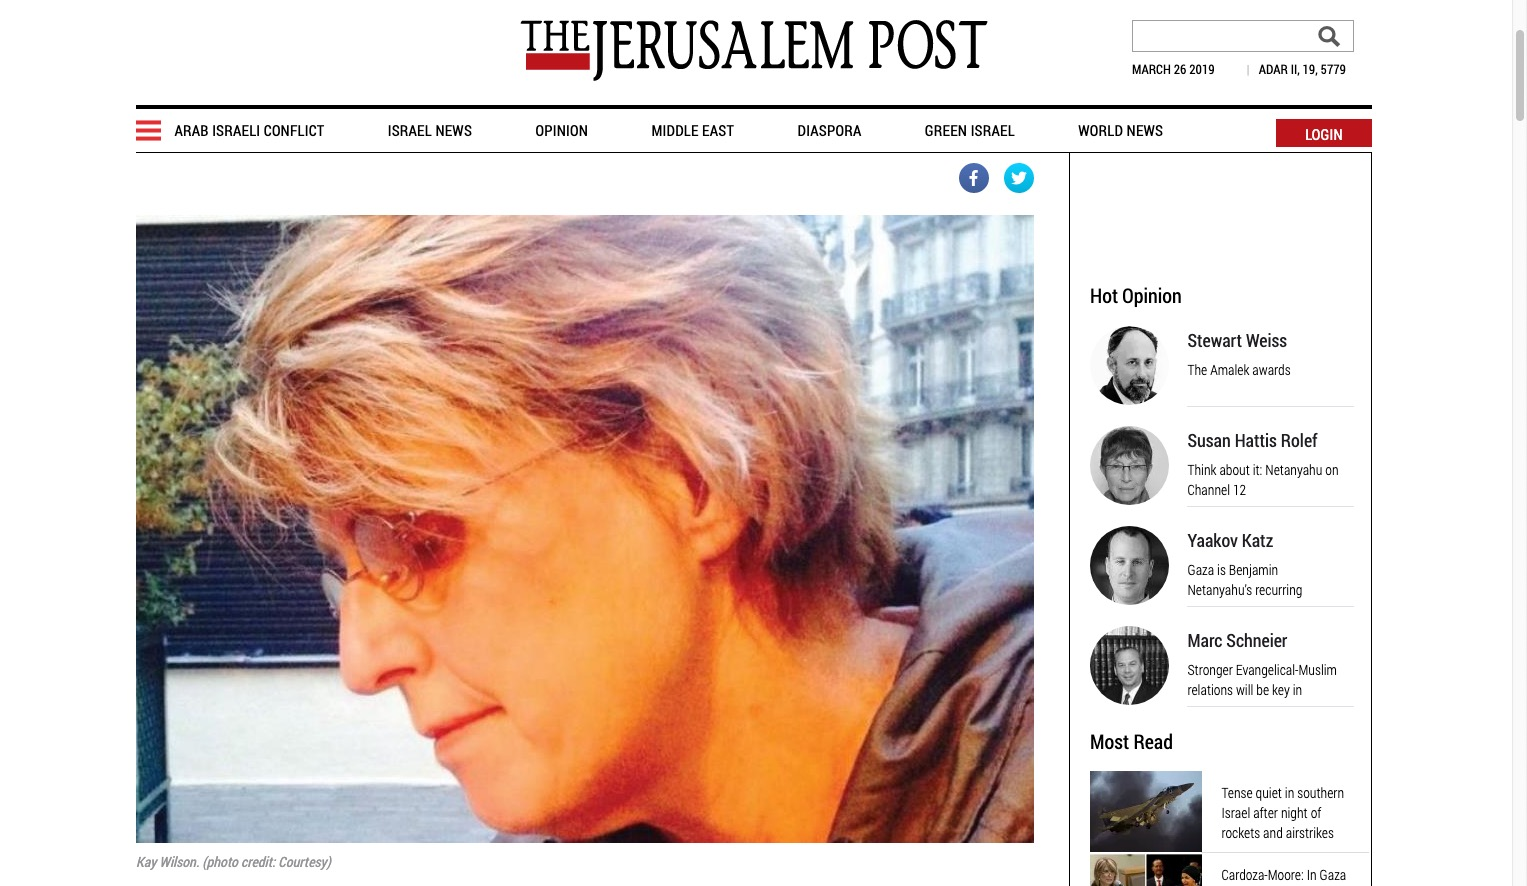 The Rage Less Traveled in the Jerusalem Post